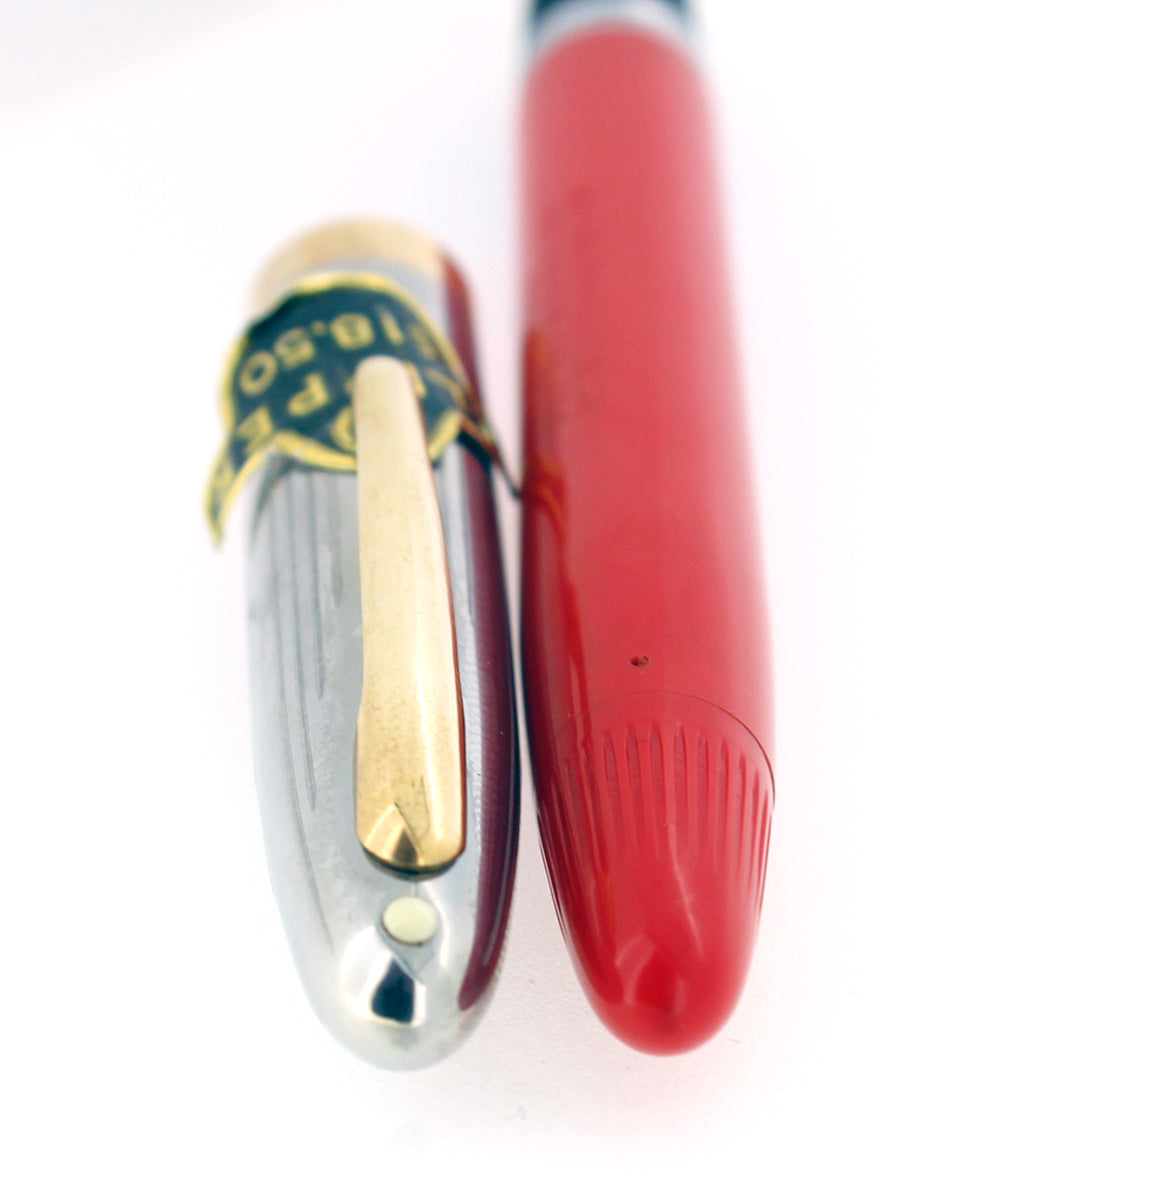 NEW OLD STOCK C1952 SHEAFFER CLIPPER FIESTA RED SNORKEL FOUNTAIN PEN MINT & STICKERED OFFERED BY ANTIQUE DIGGER